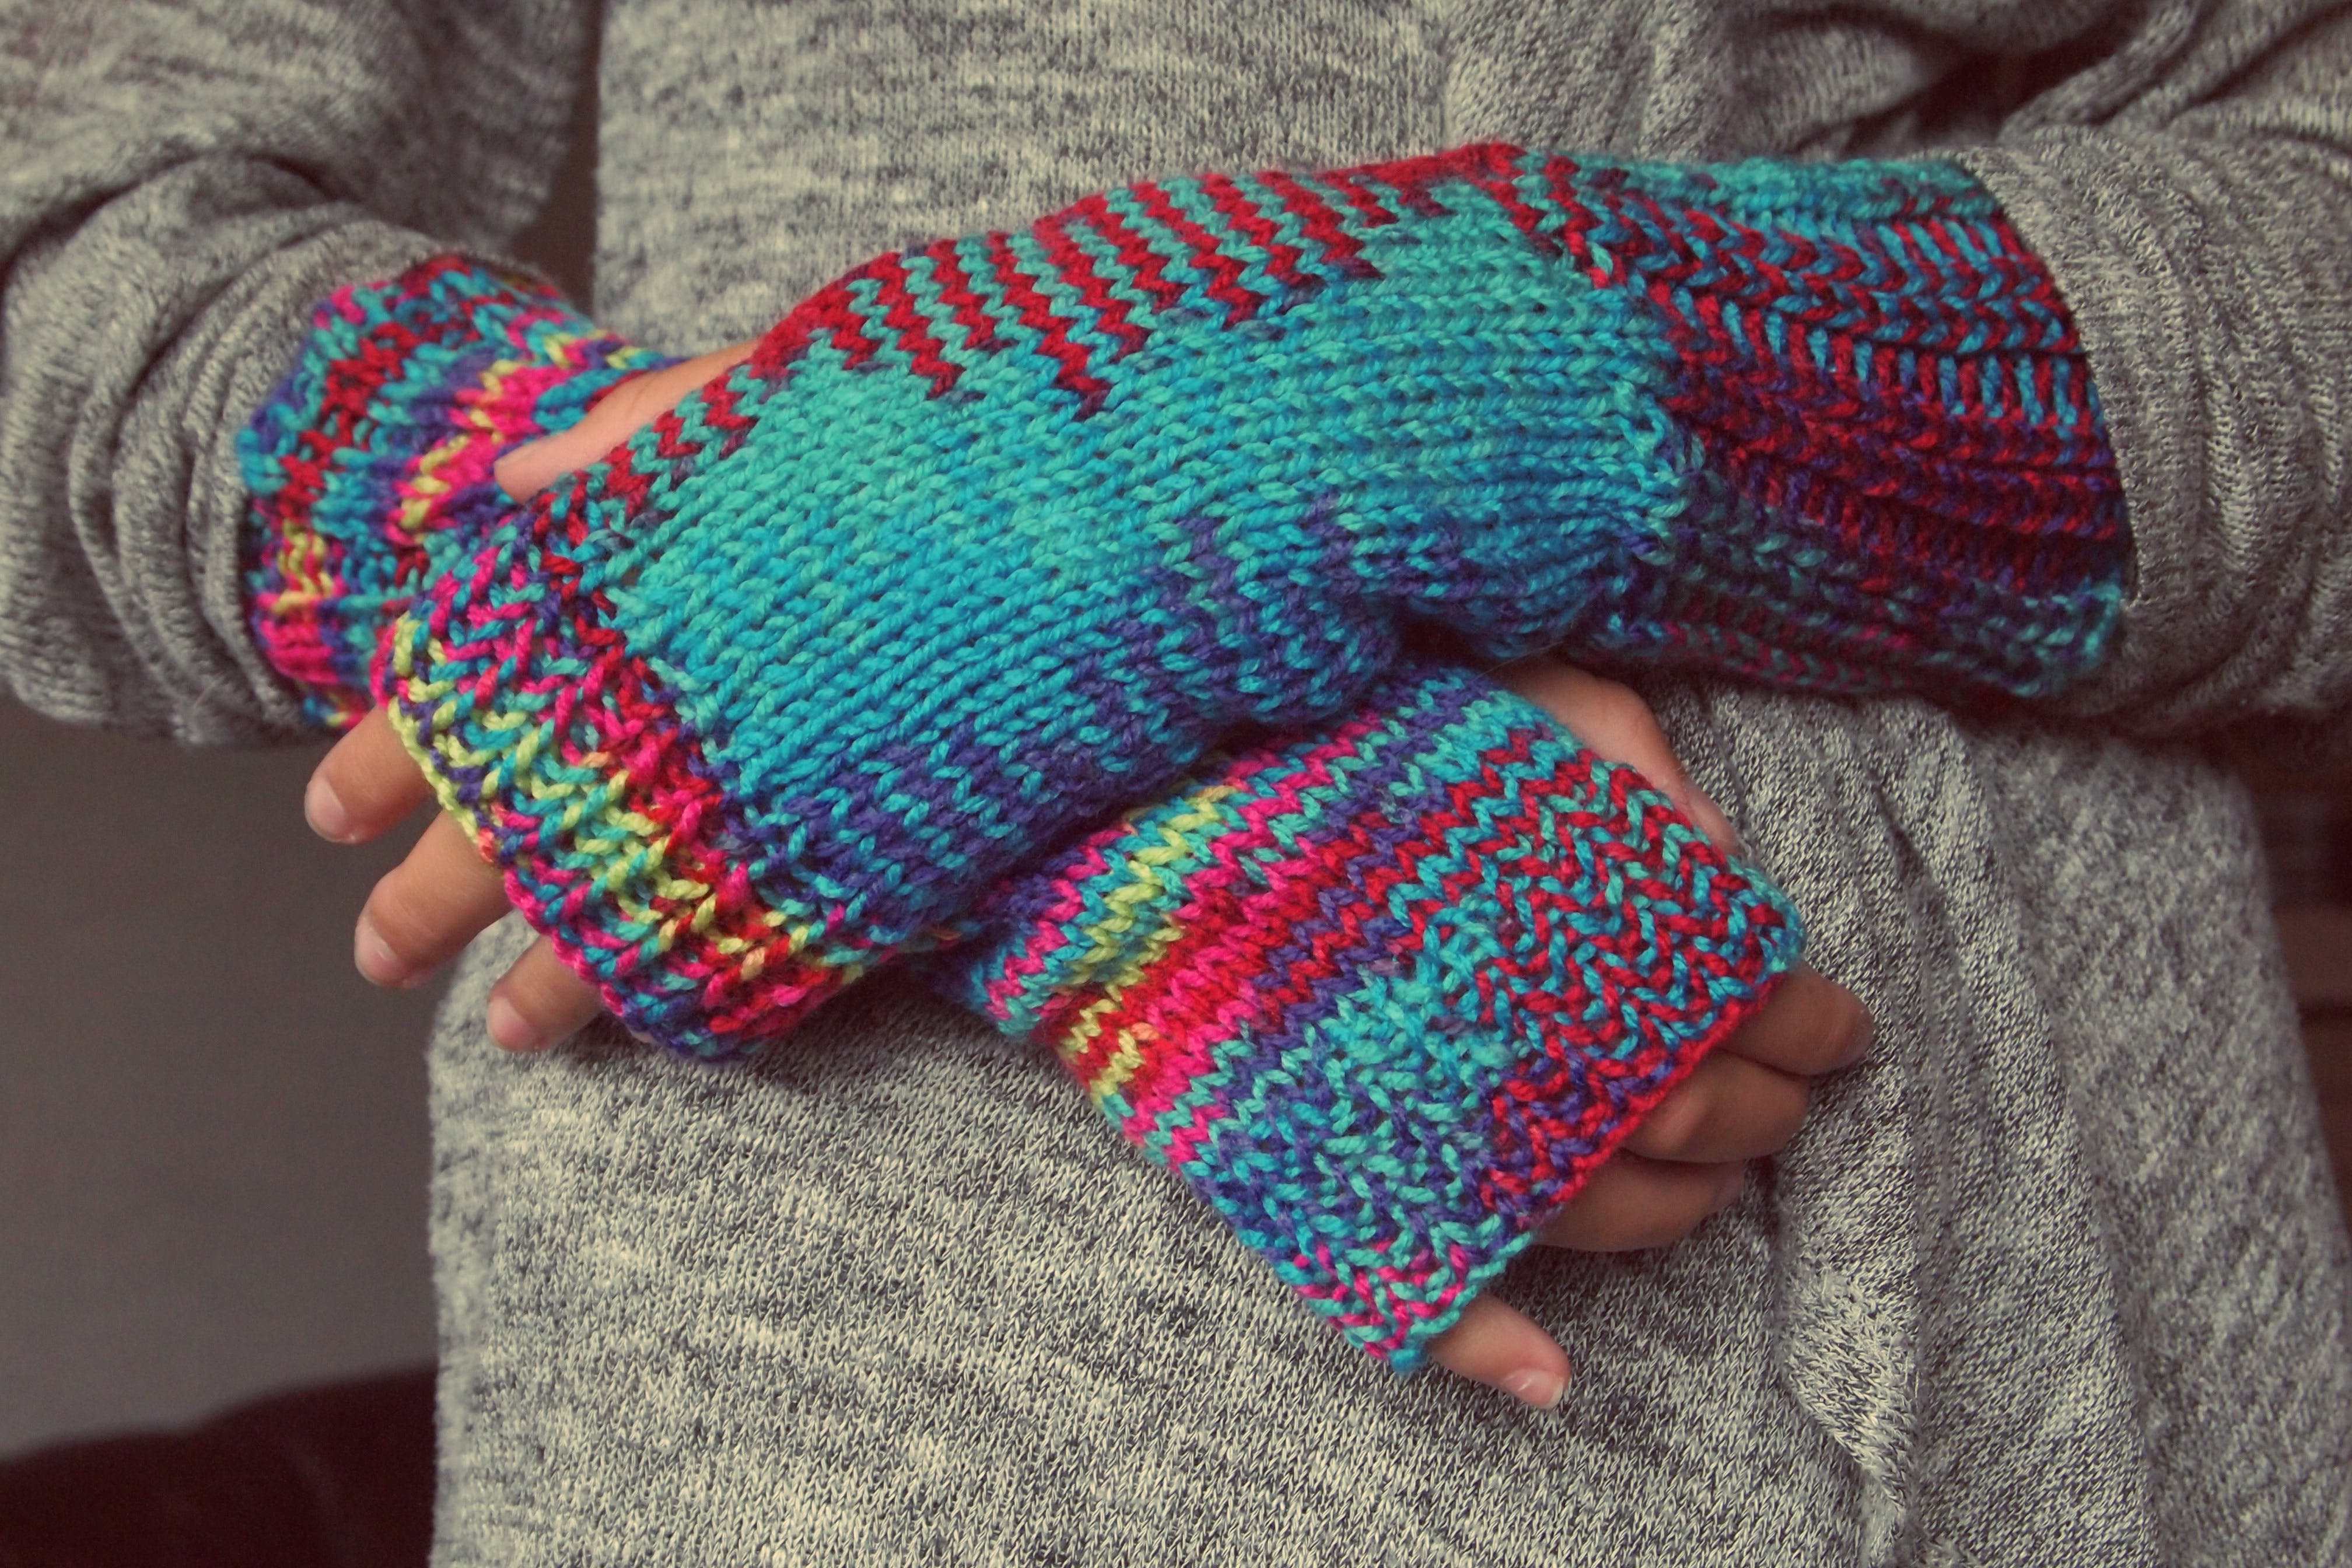 Gray Cyan and Red Knitted Sweater